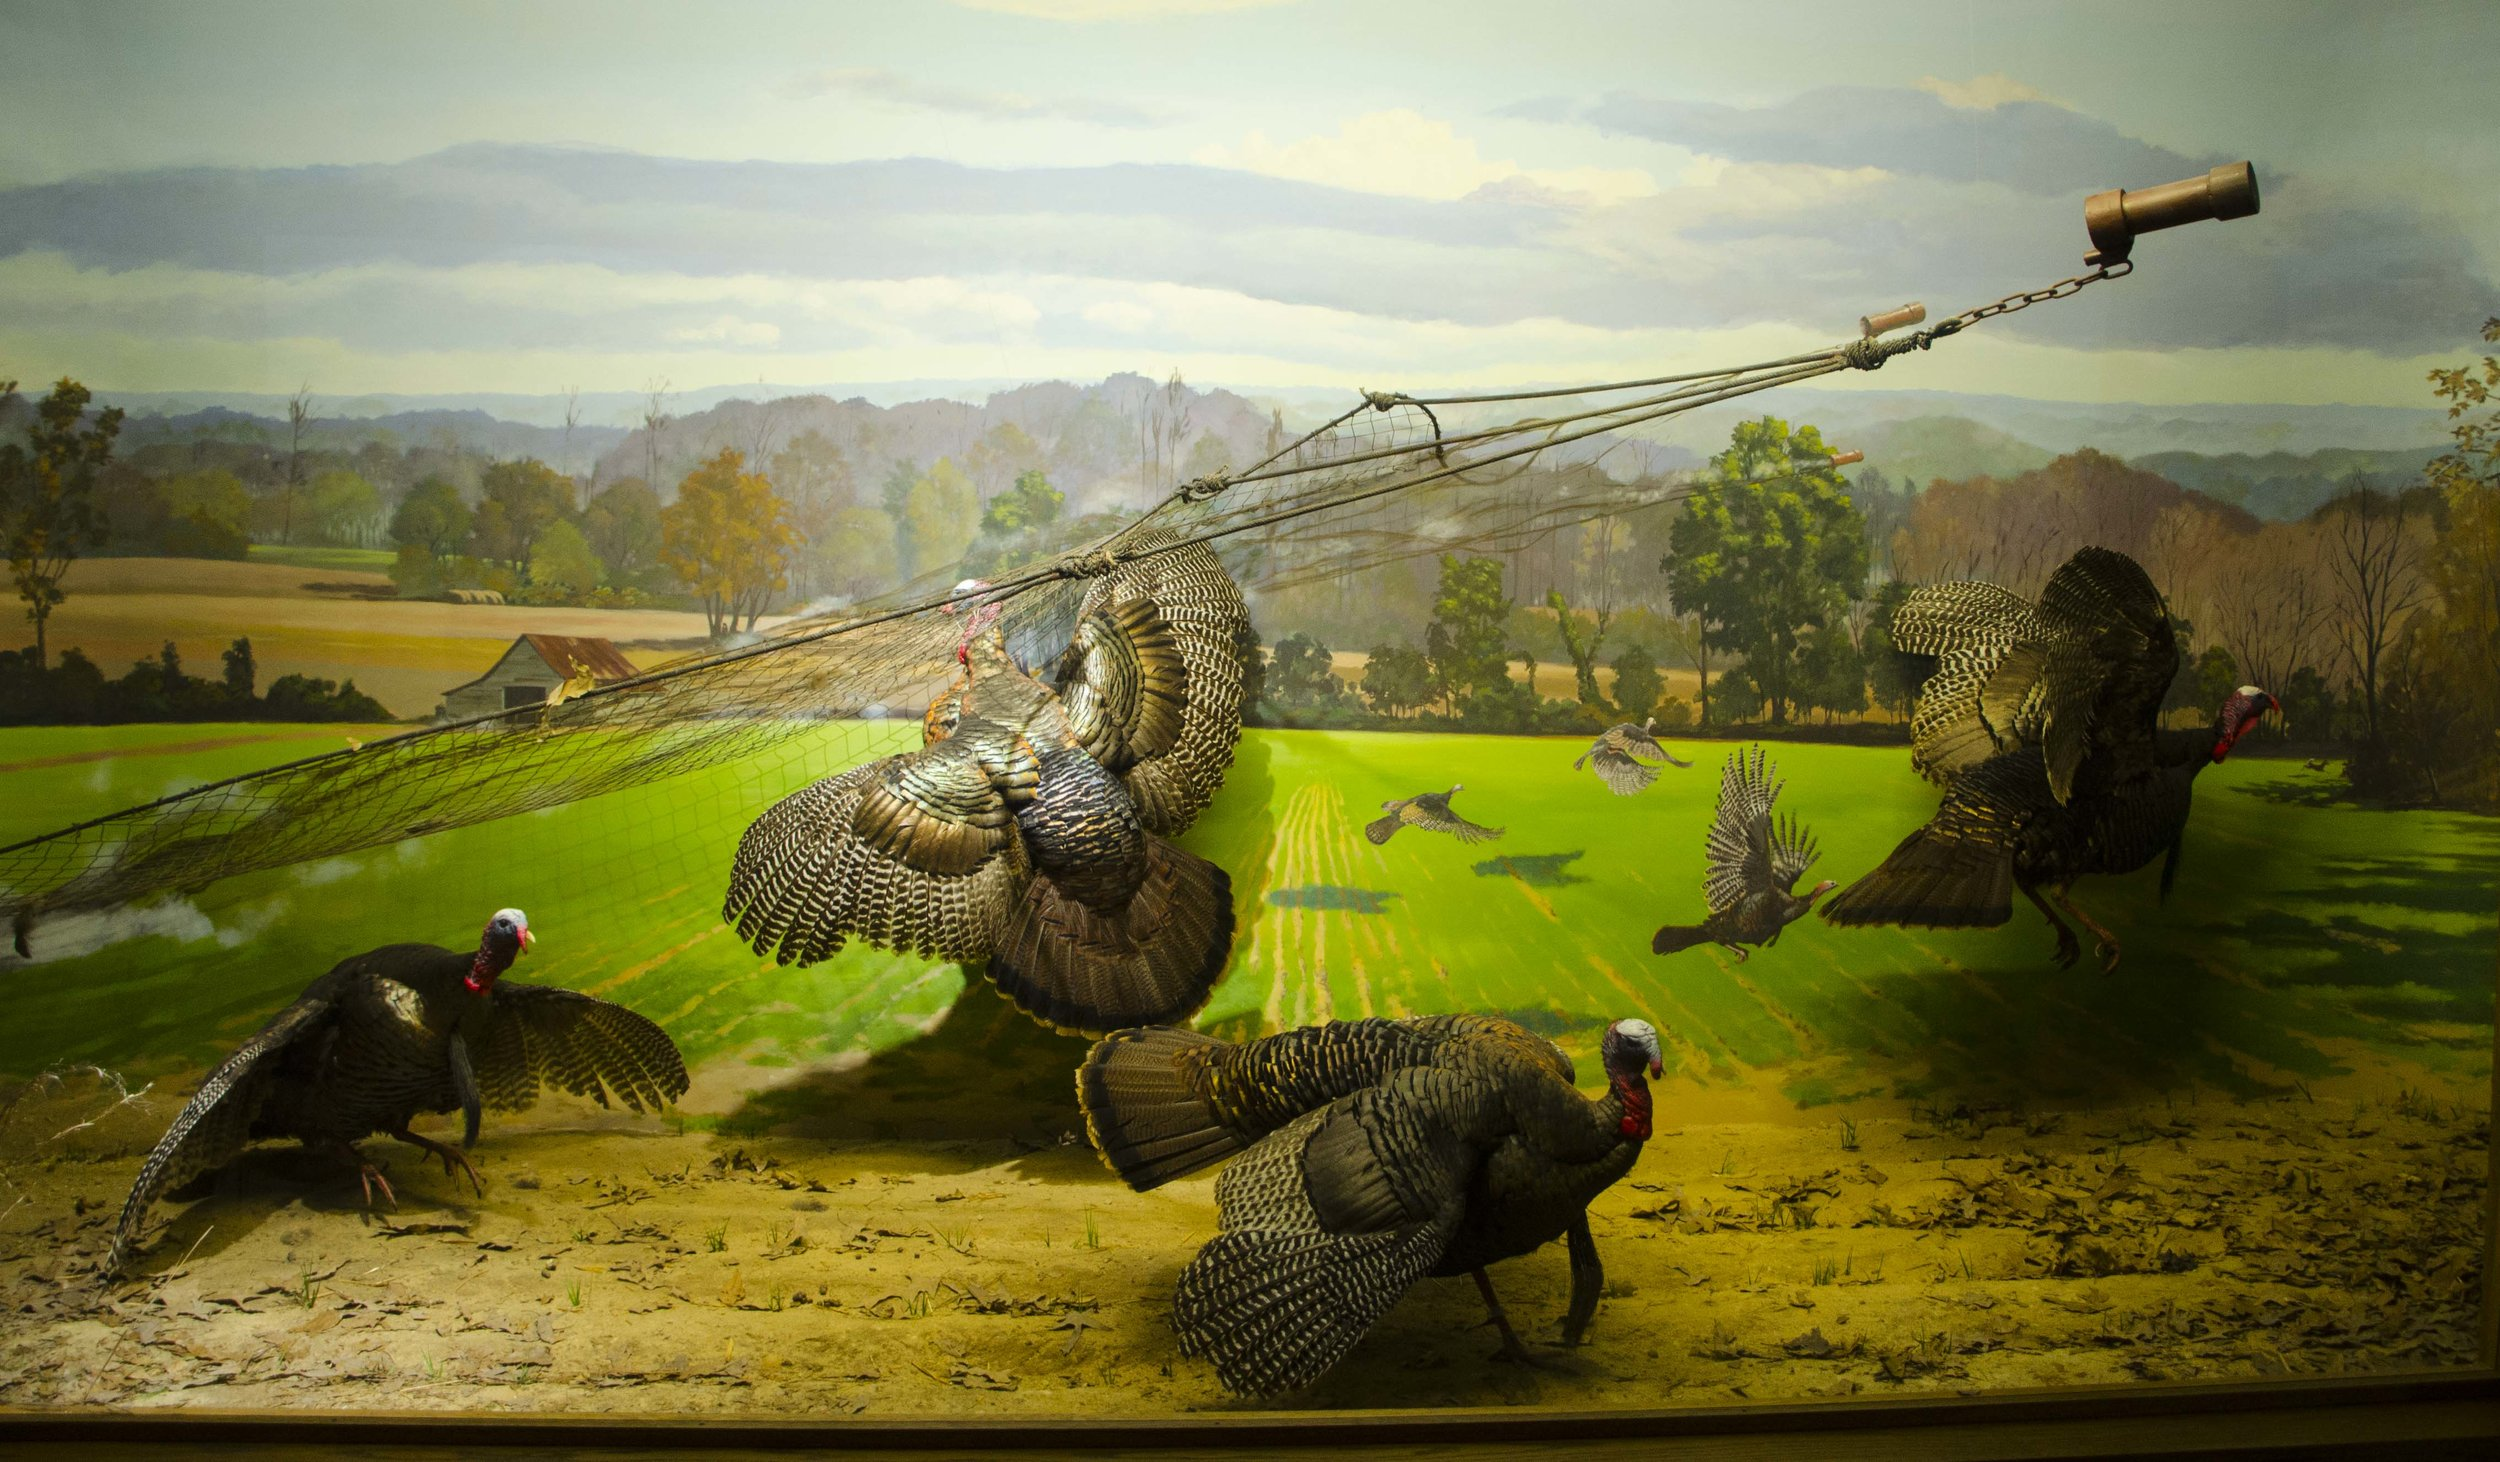 Awesome rocket-netting diorama!(SCDNR photo by D. Lucas)